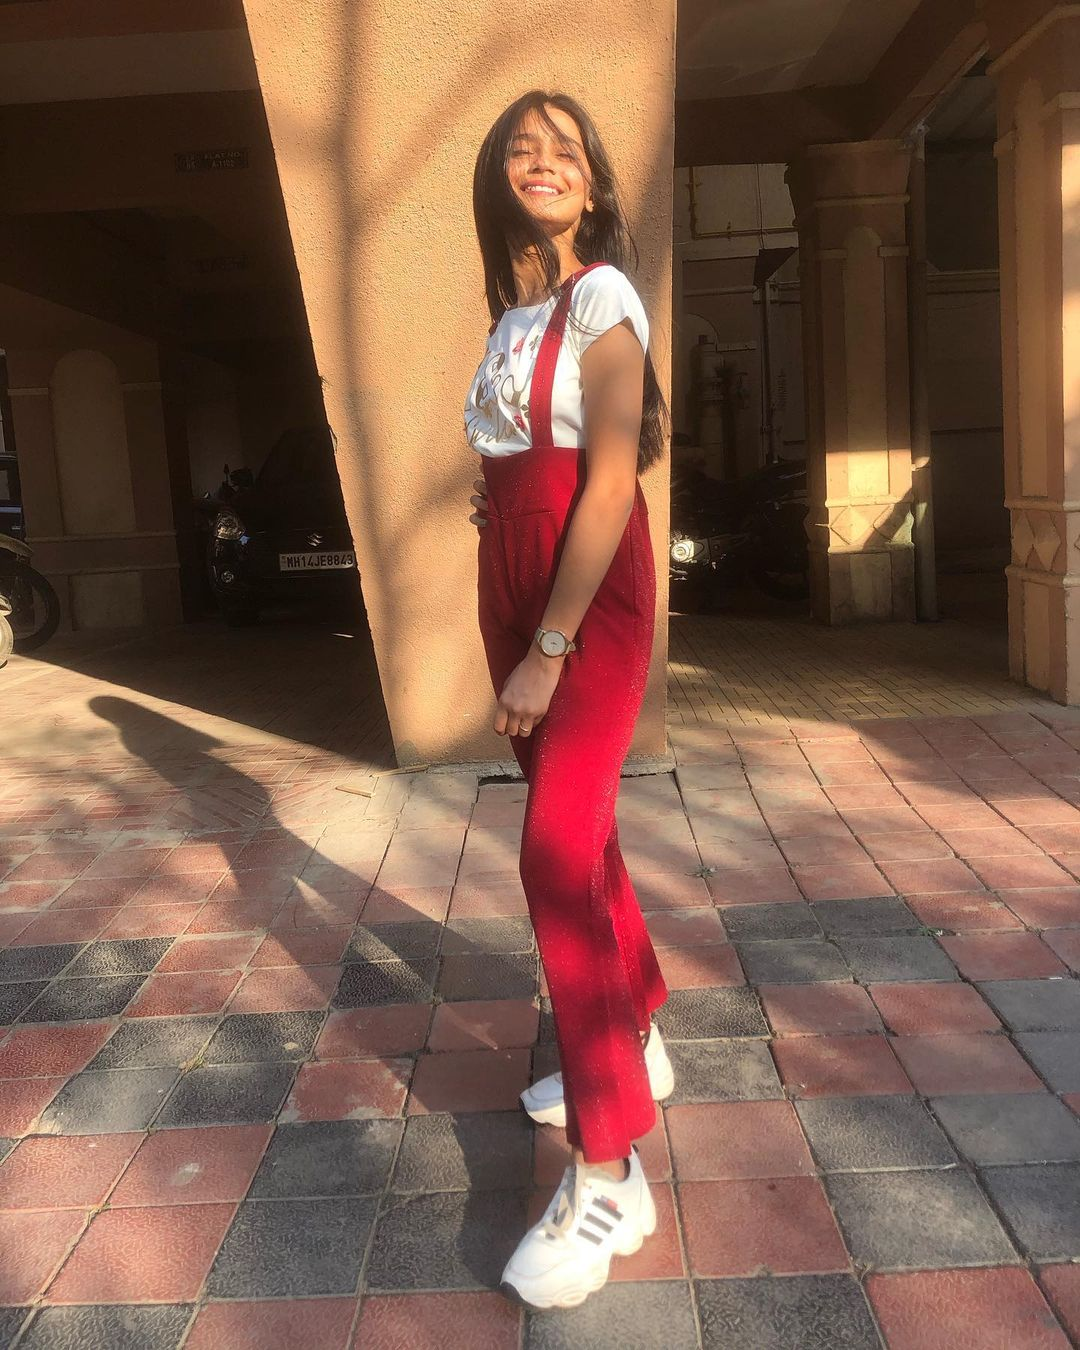 Indian Instagram Model and Actress Mahi Singhvi Mishty Photos Images HD Wallpapers Free Download